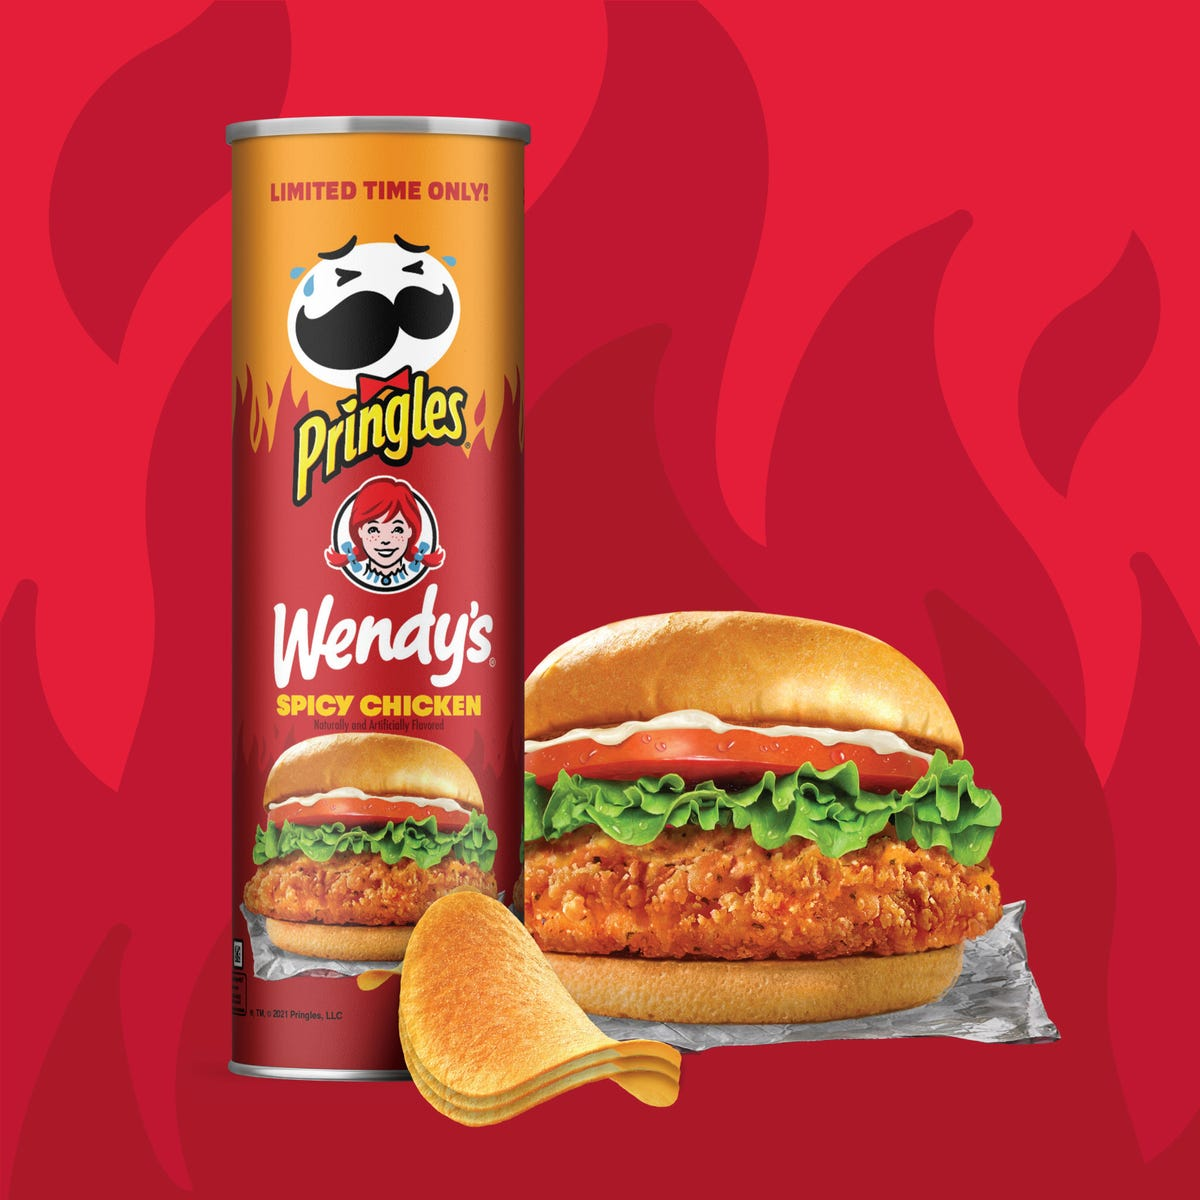 A can of Pringles sits next to a spicy chicken sandwich from Wendy's